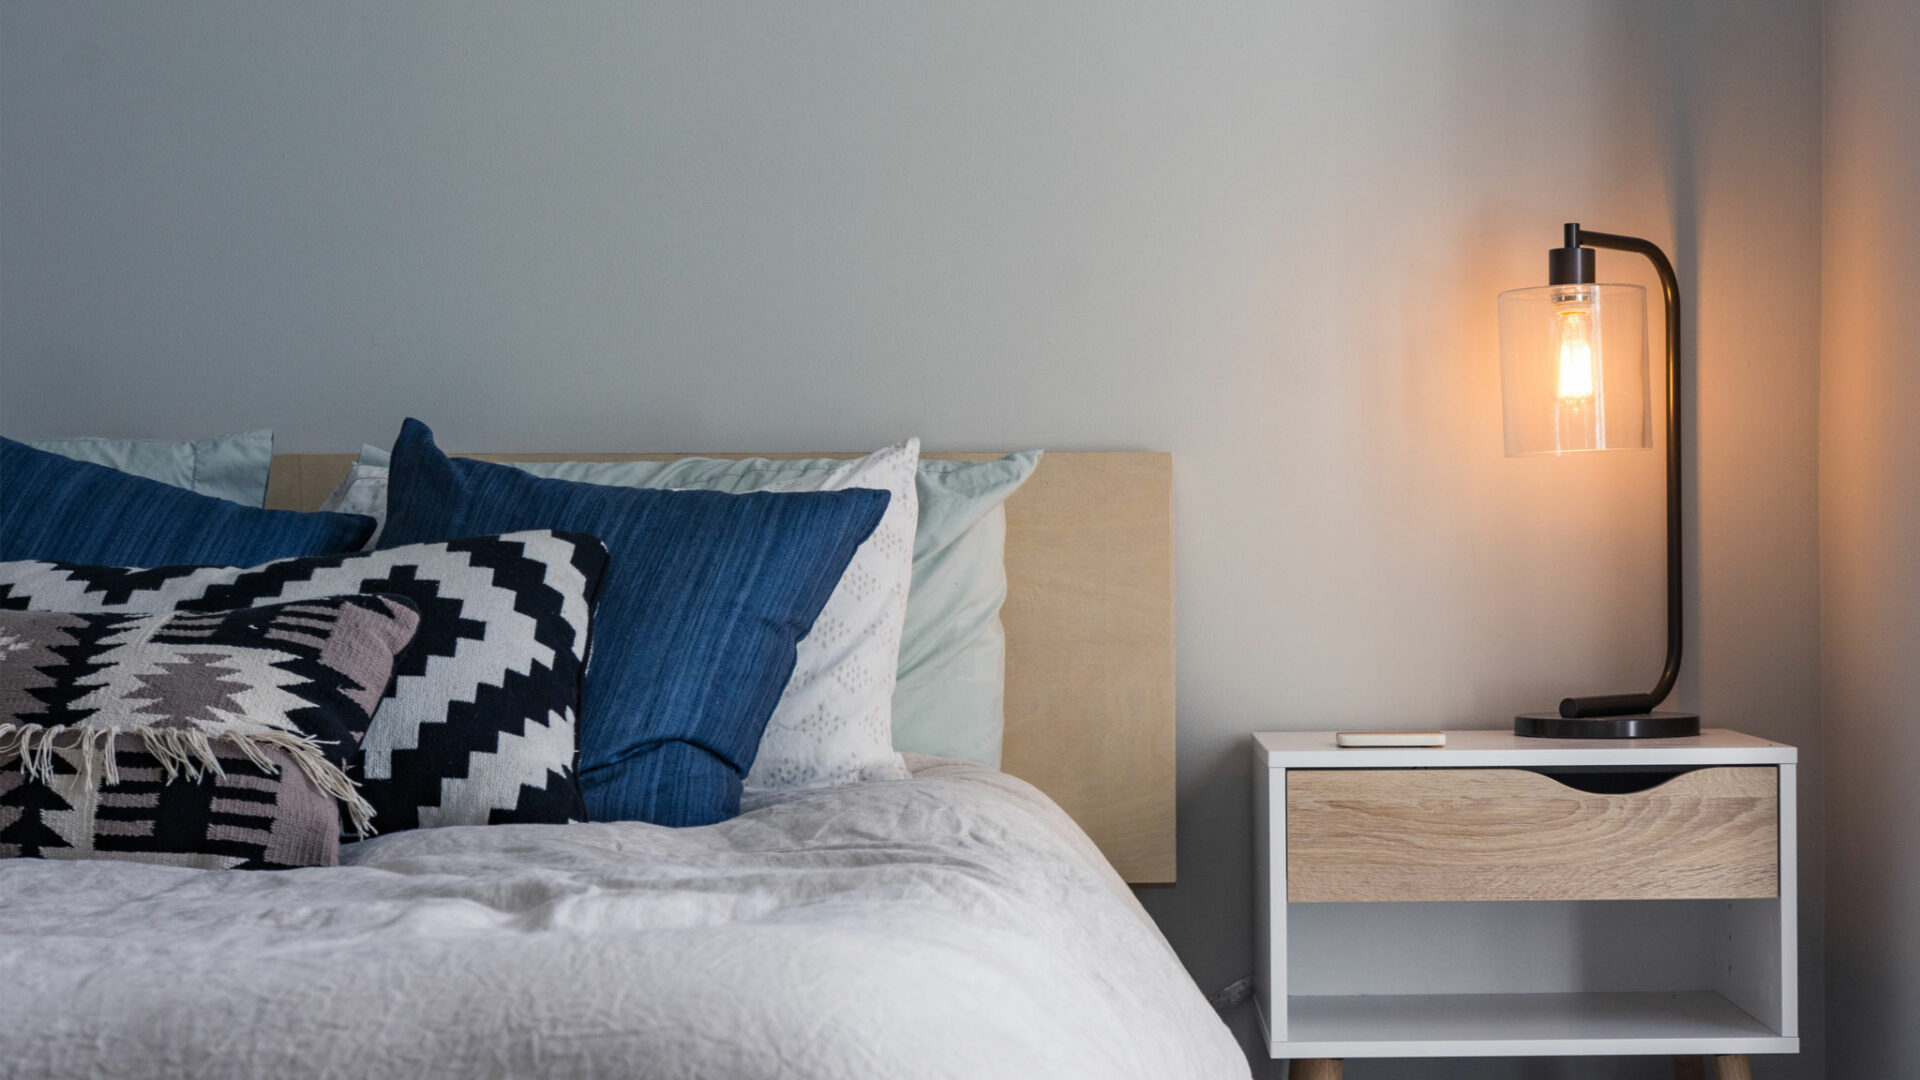 6 reasons to invest in a night light for your kid's bedroom